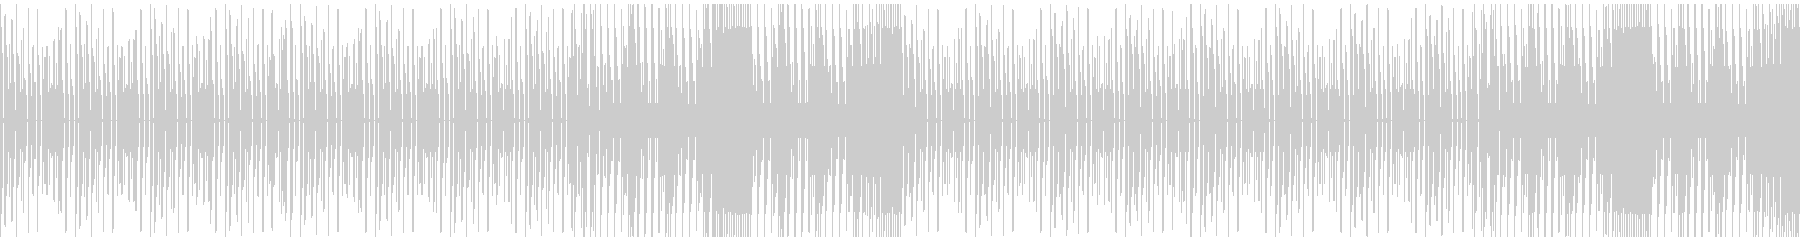 FC-style loop through a pipe's unreproduced waveform